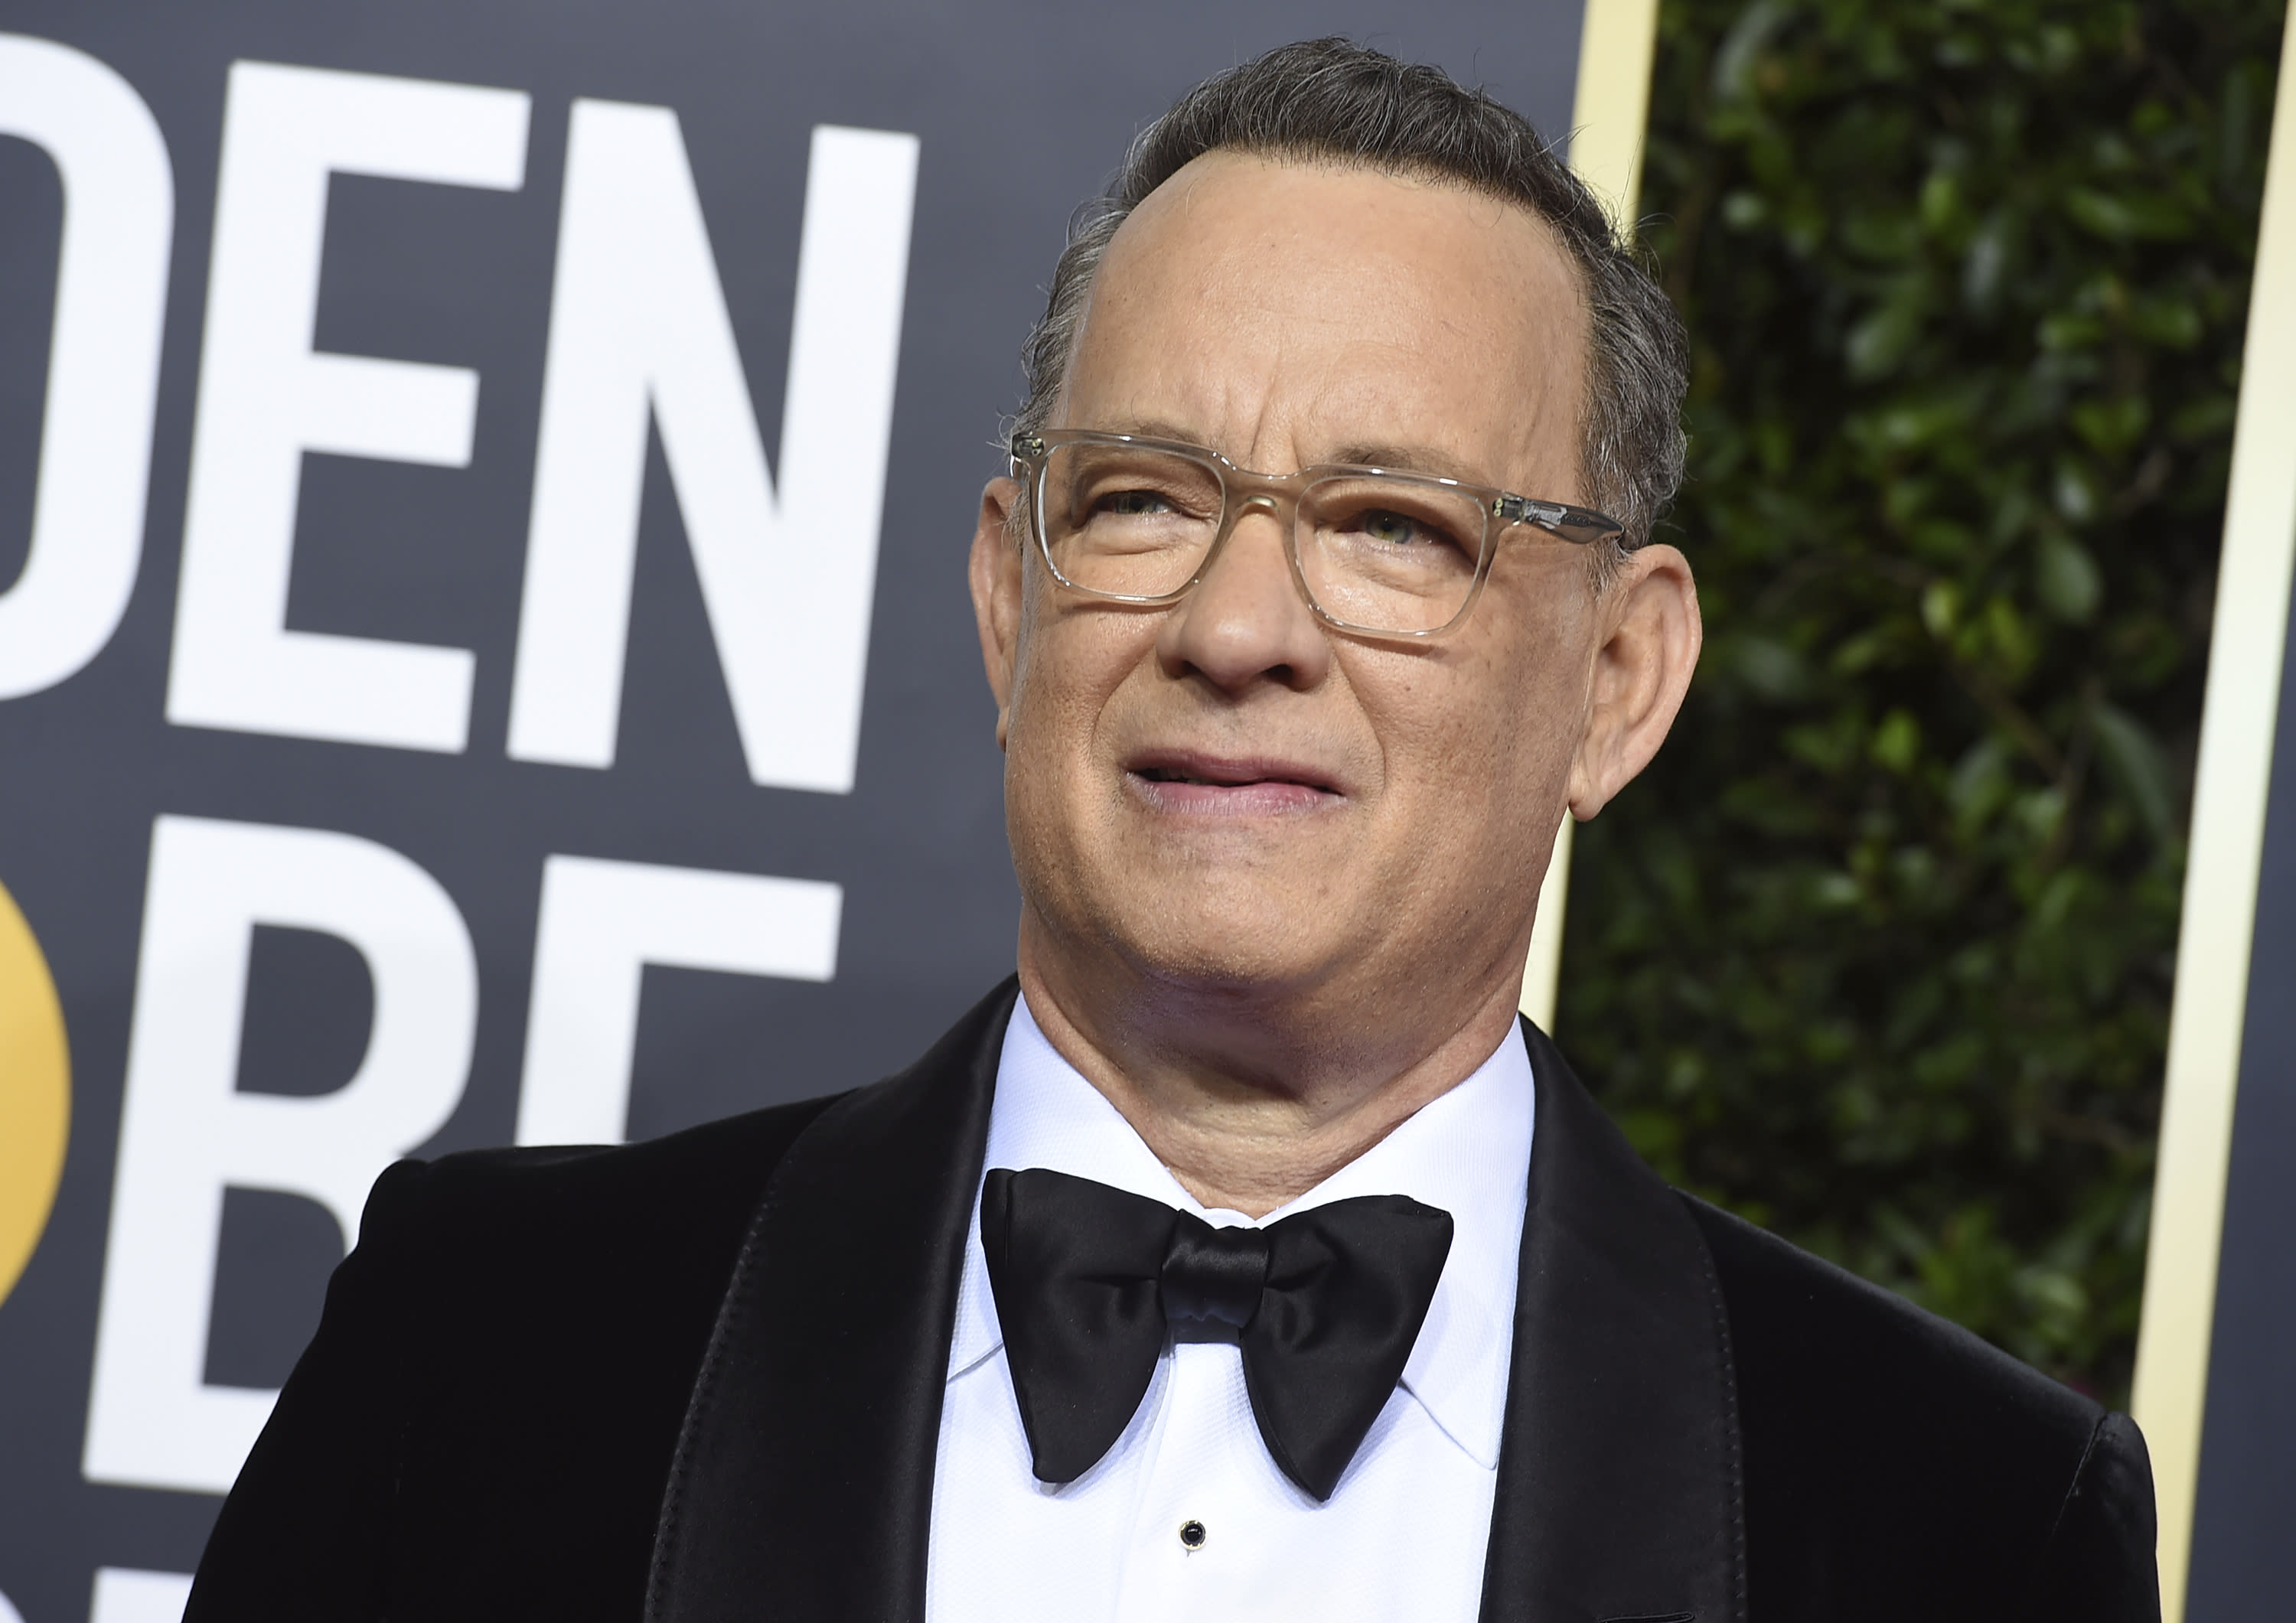 Tom Hanks wants you to know that he's not out there endorsing CBD products